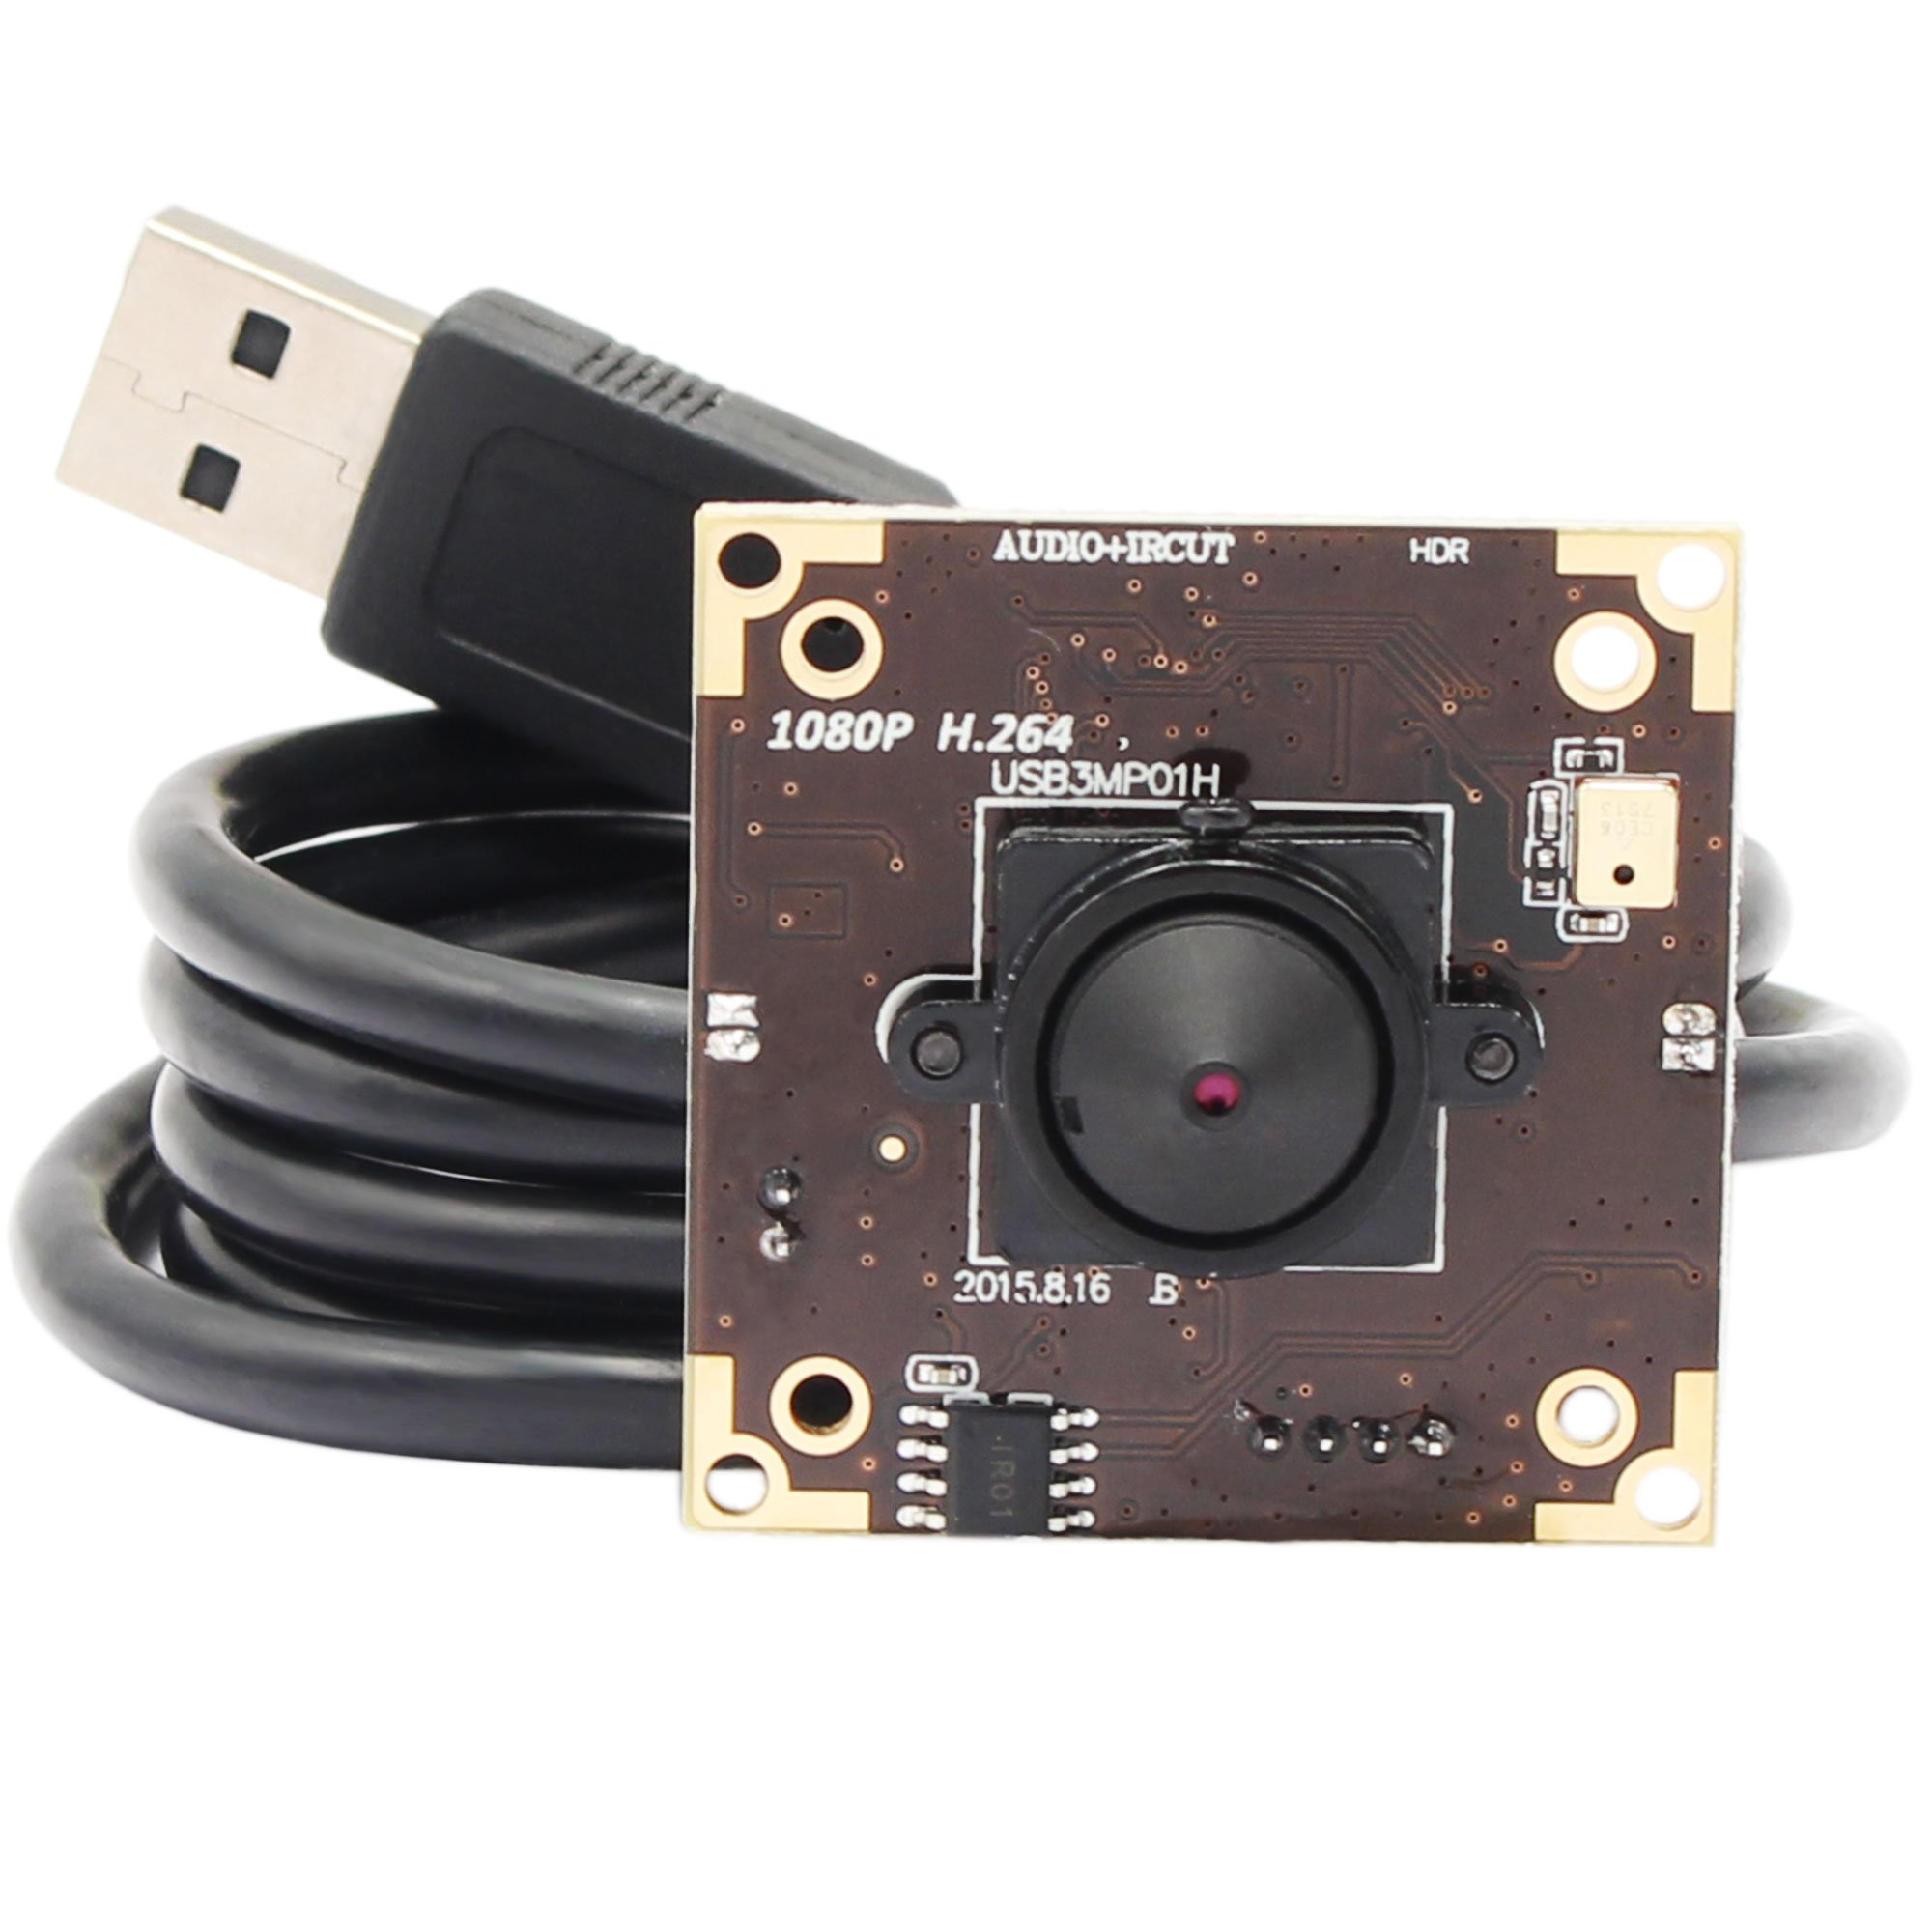 3.0 megapixel WDR usb camera with 3.7mm pinhole lens adopt MICRON AR0331 sensor, Dynamic Range up to 100 dB